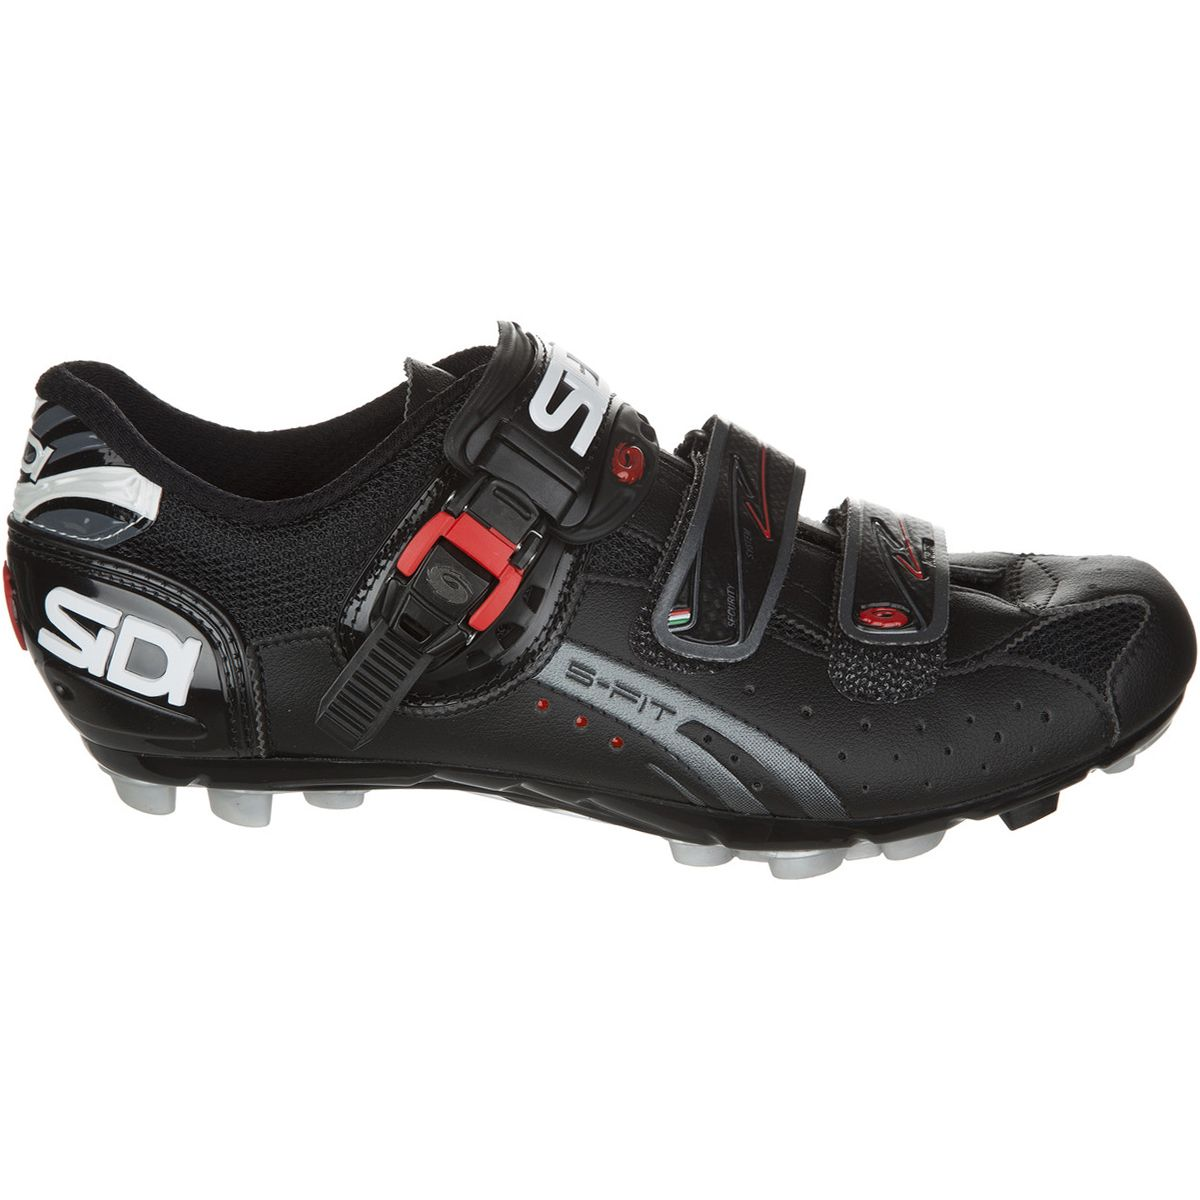 Sidi Mountain Bike Shoes Women   Sale